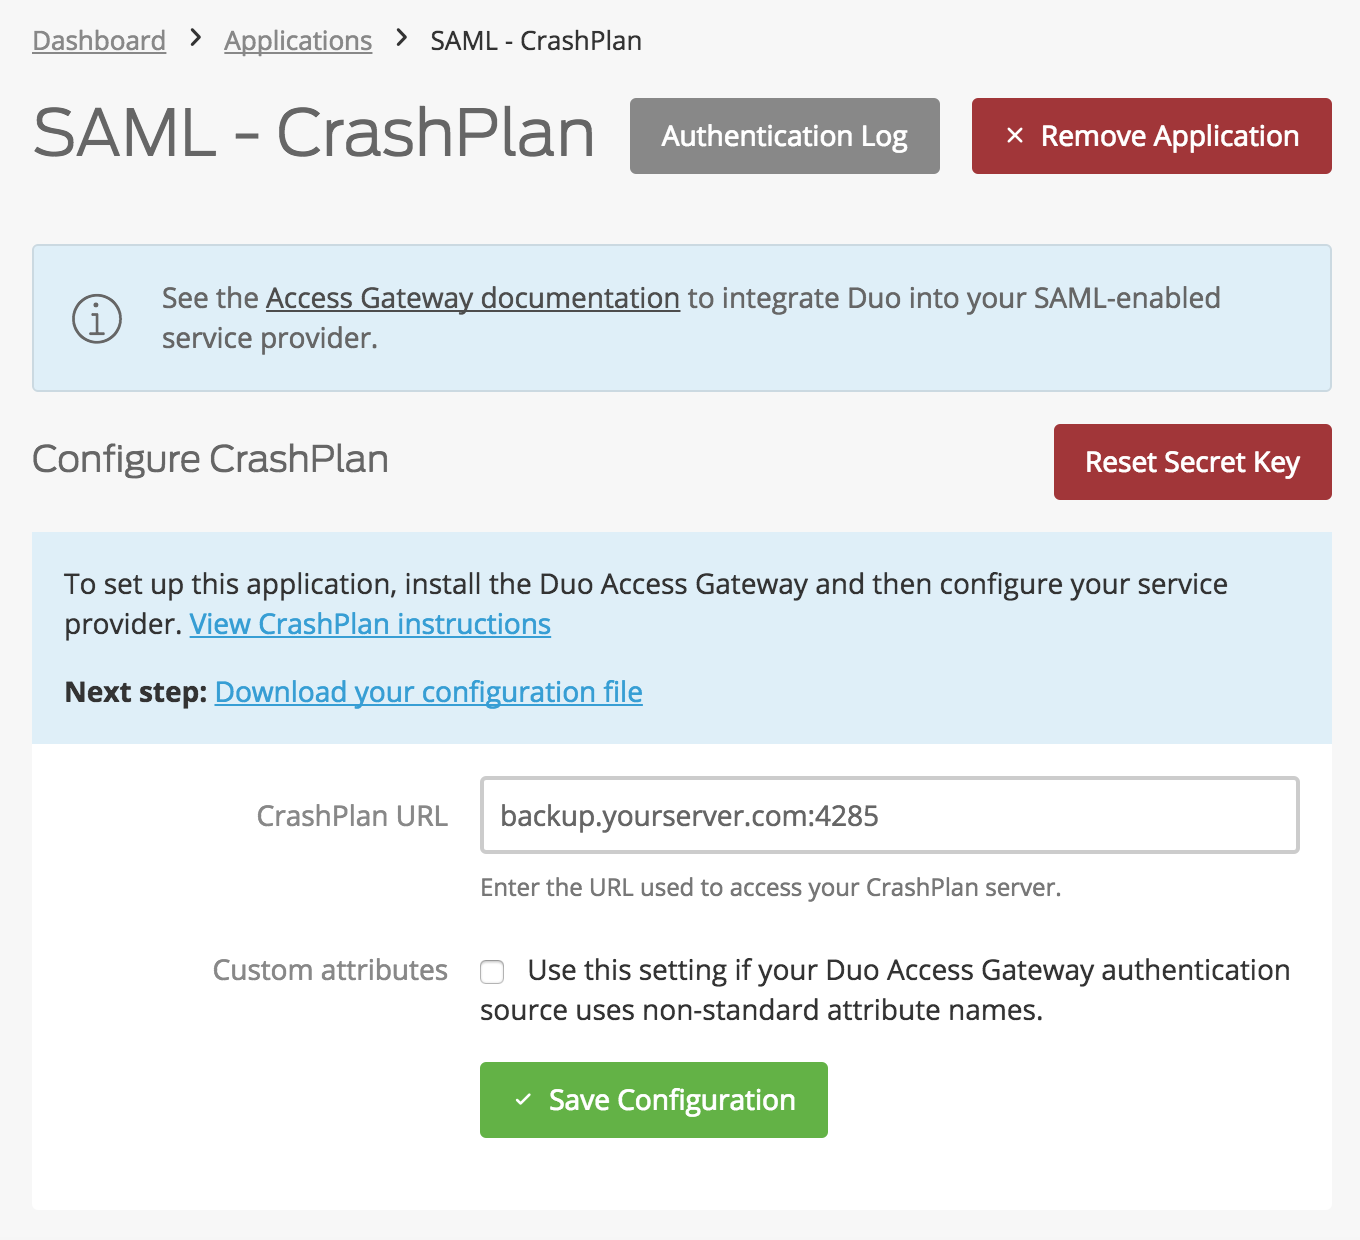 Duo CrashPlan Application Settings